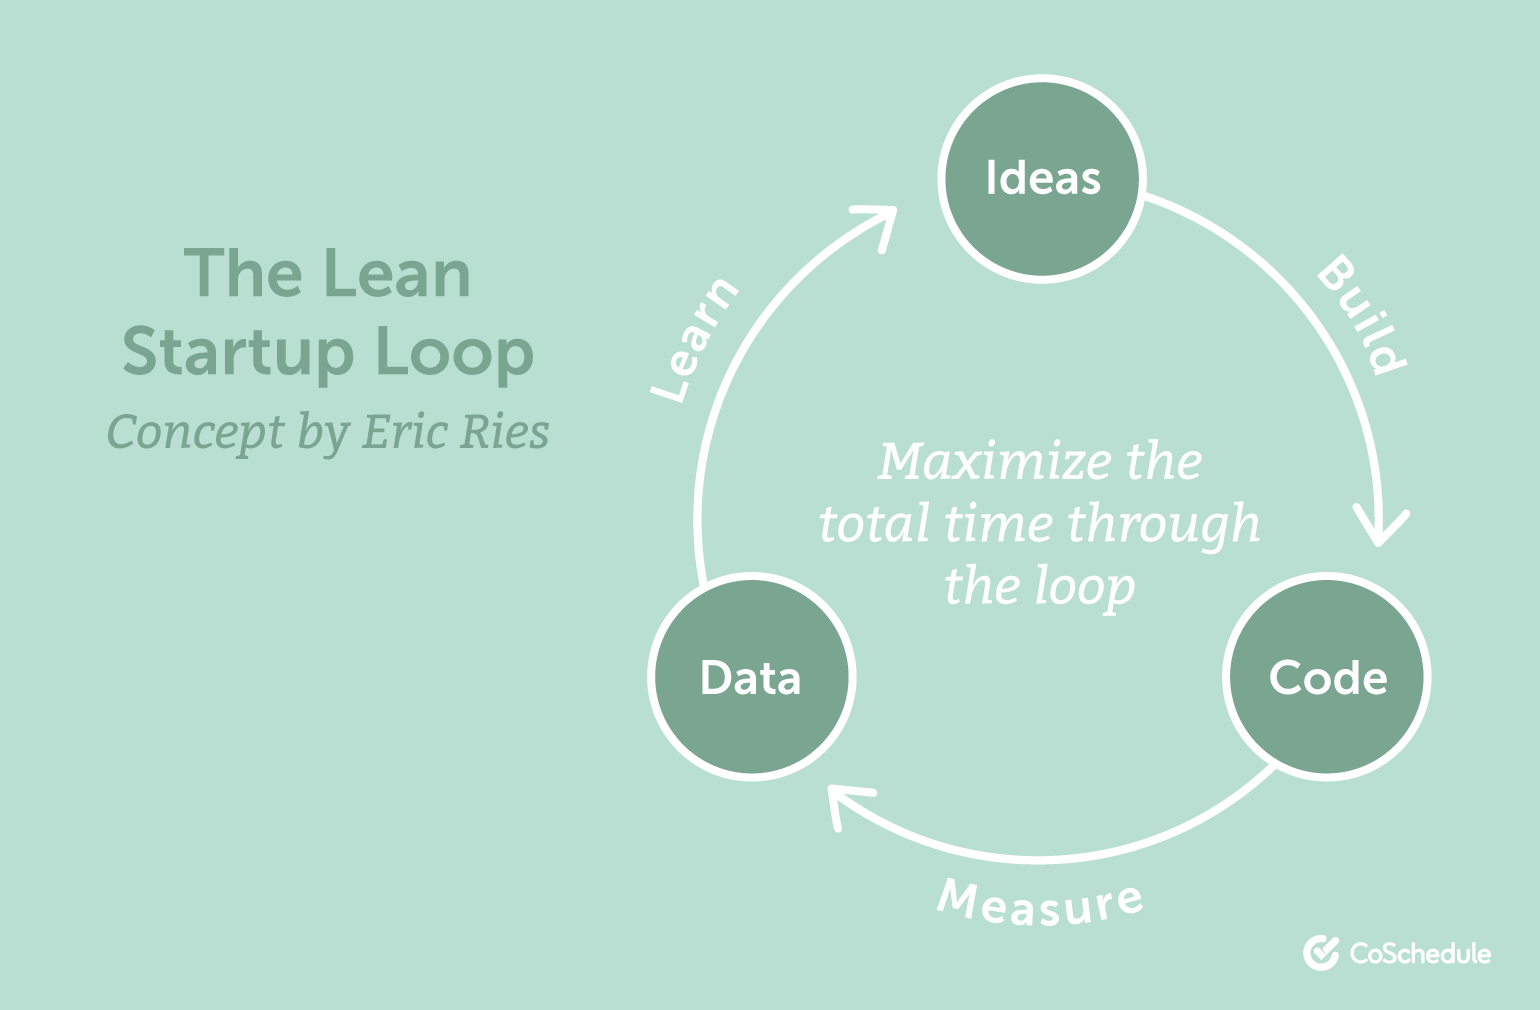 Here's what the lean startup loop looks like